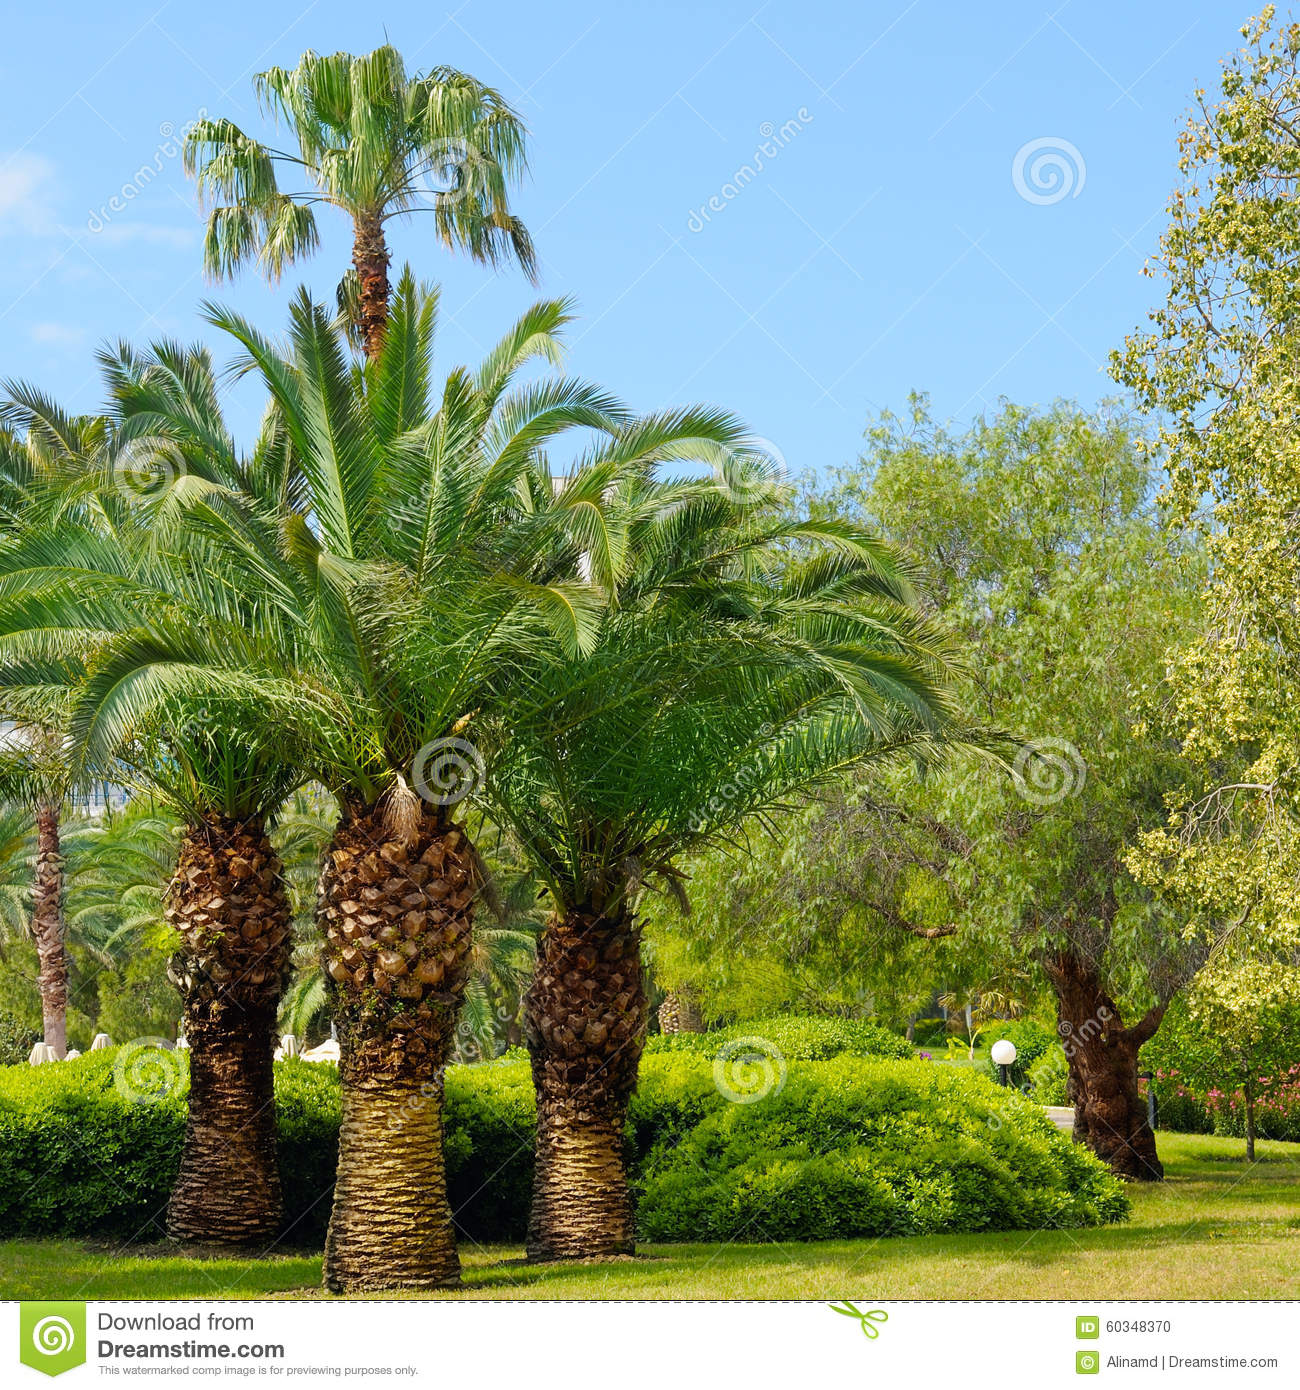 fotos de jardim tropical : fotos de jardim tropical:Tropical Garden with Palm Trees